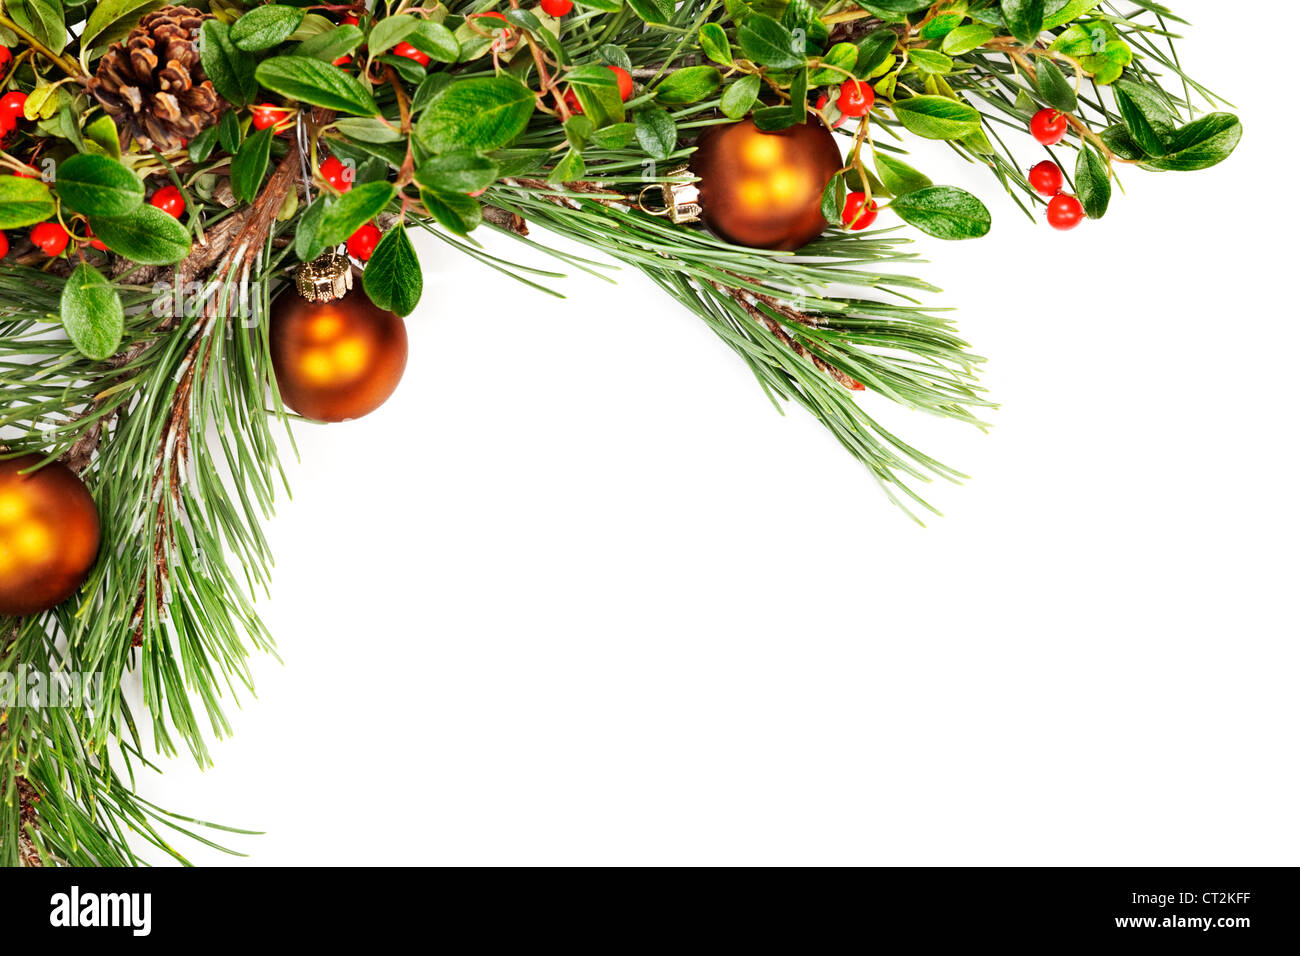 Holiday Garland With Ornaments, Pine Branches, Pine Cones